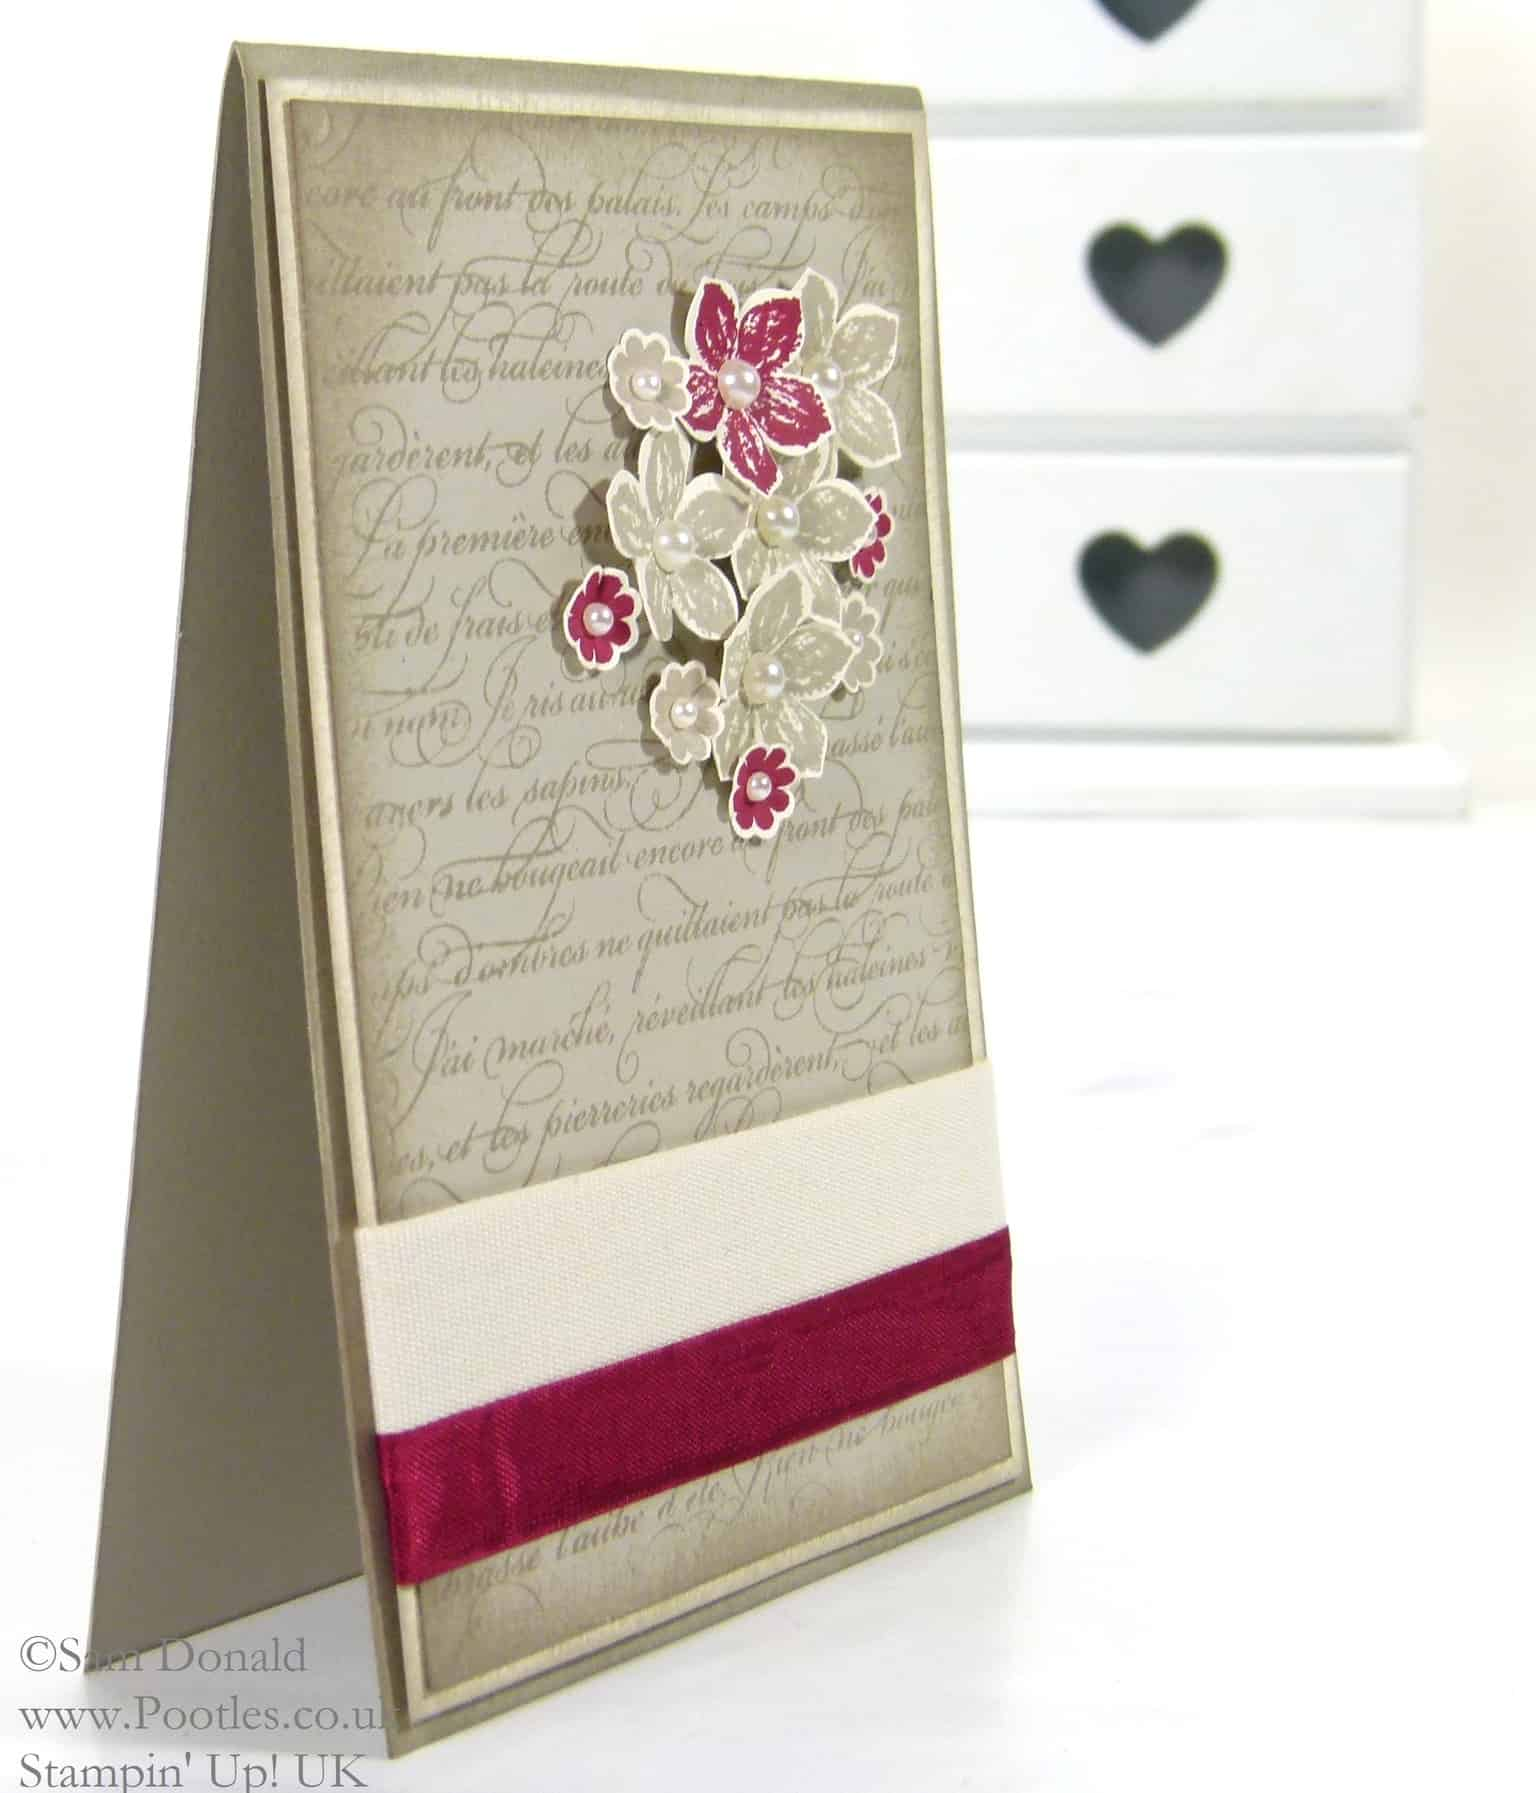 POOTLES Stampin' Up! UK En Francais meets Petite Petals